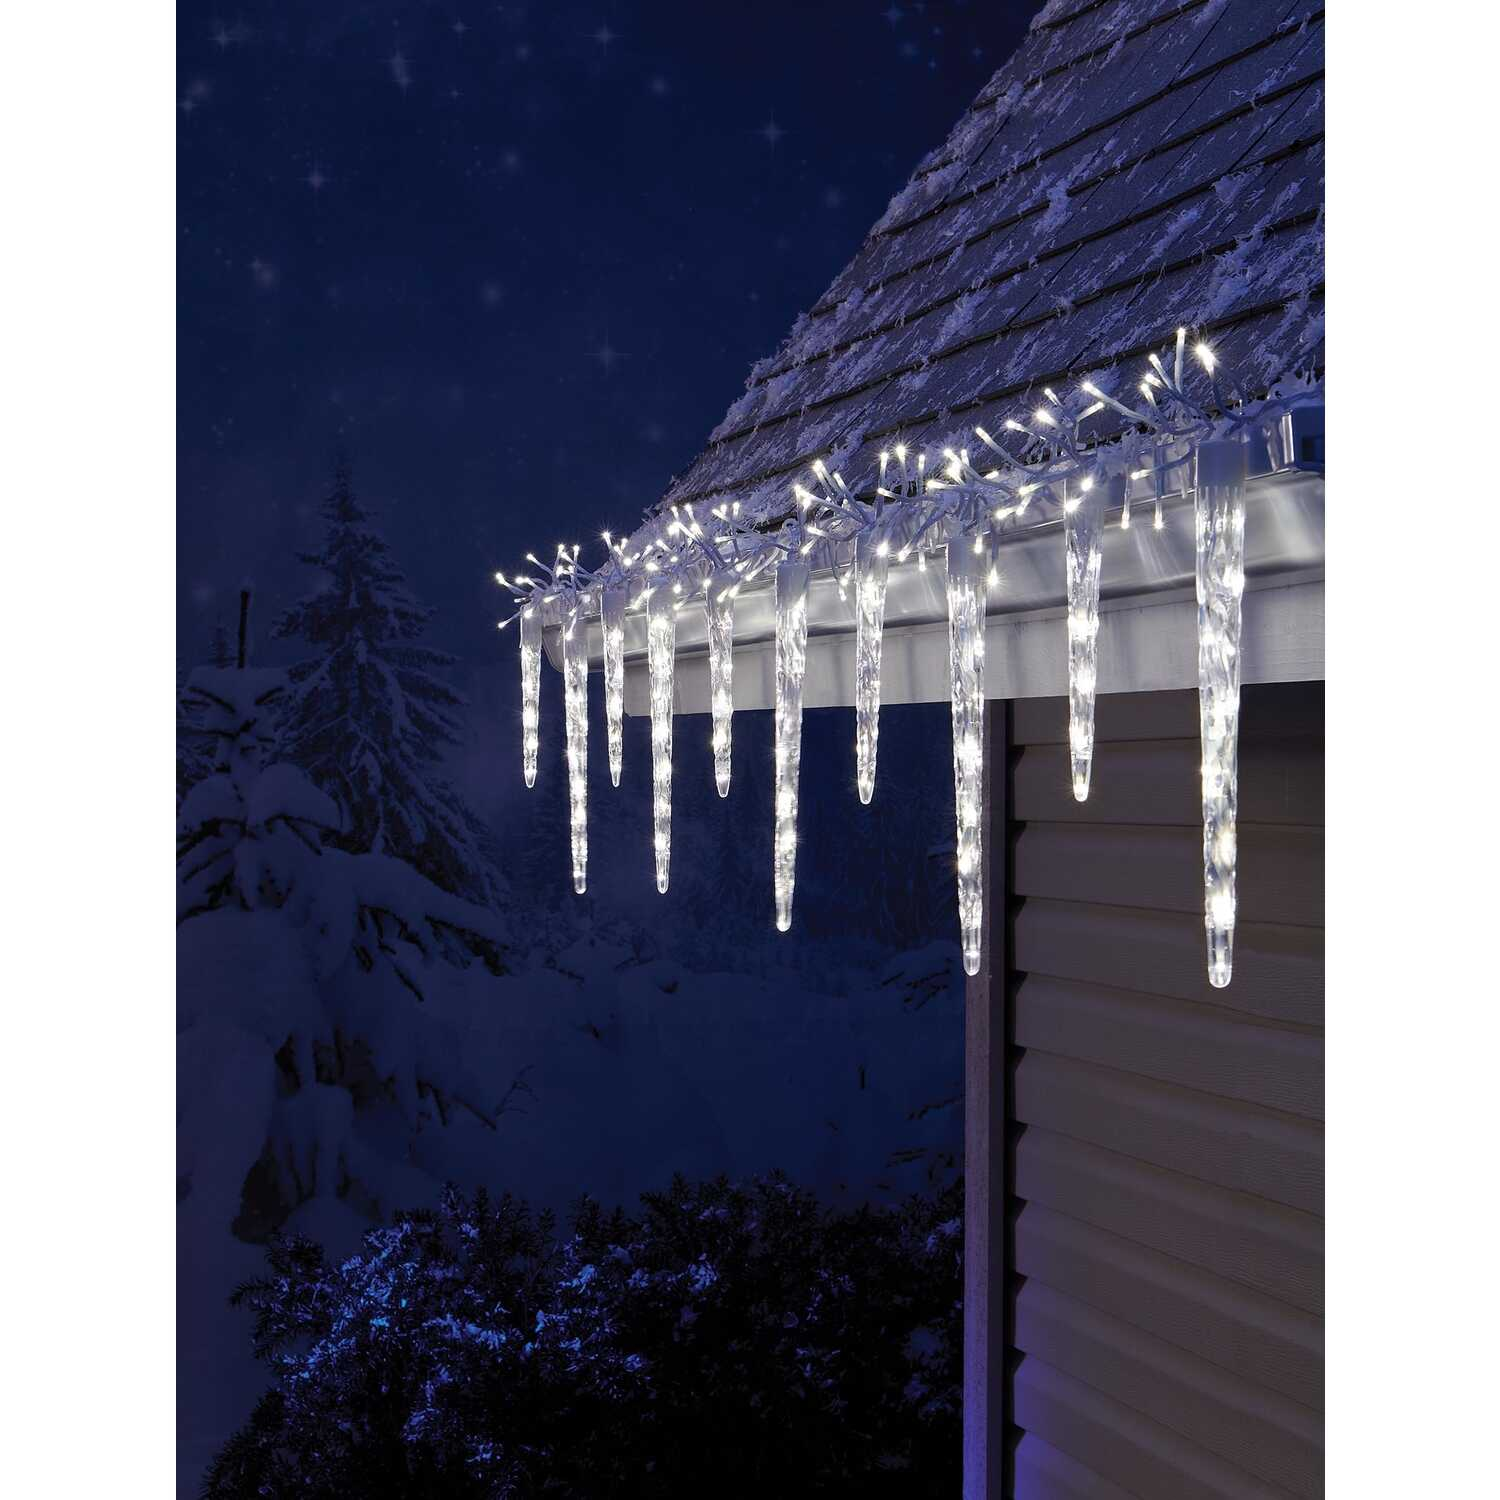 Celebrations  Euro  LED  Micro cluster with icicle-style reflectors  Light Set  Warm White  9 ft. 24